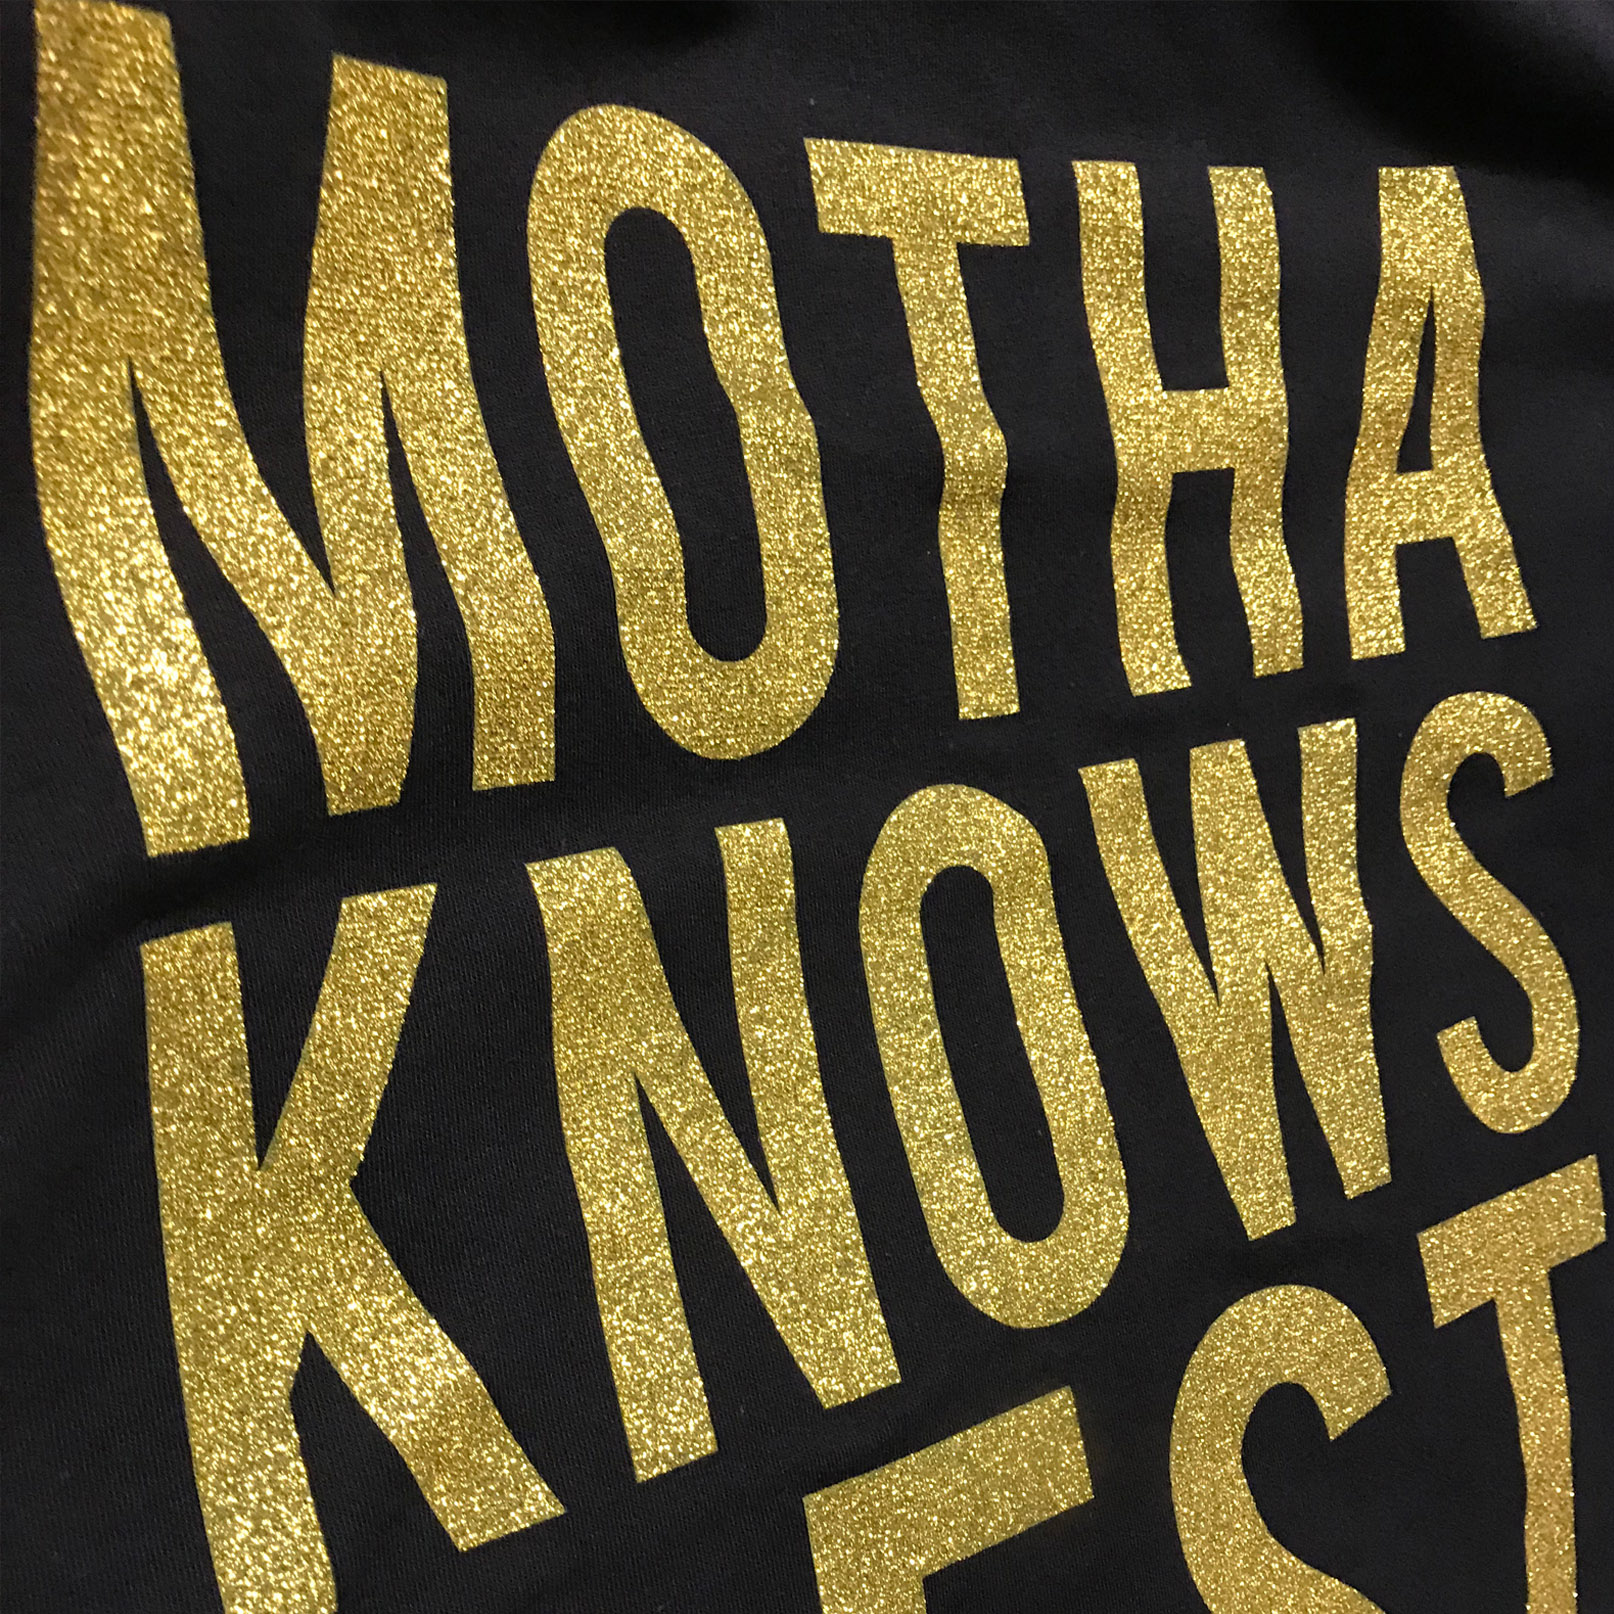 Method Chicago Custom Screen Printed Shirts - Speciality Inks